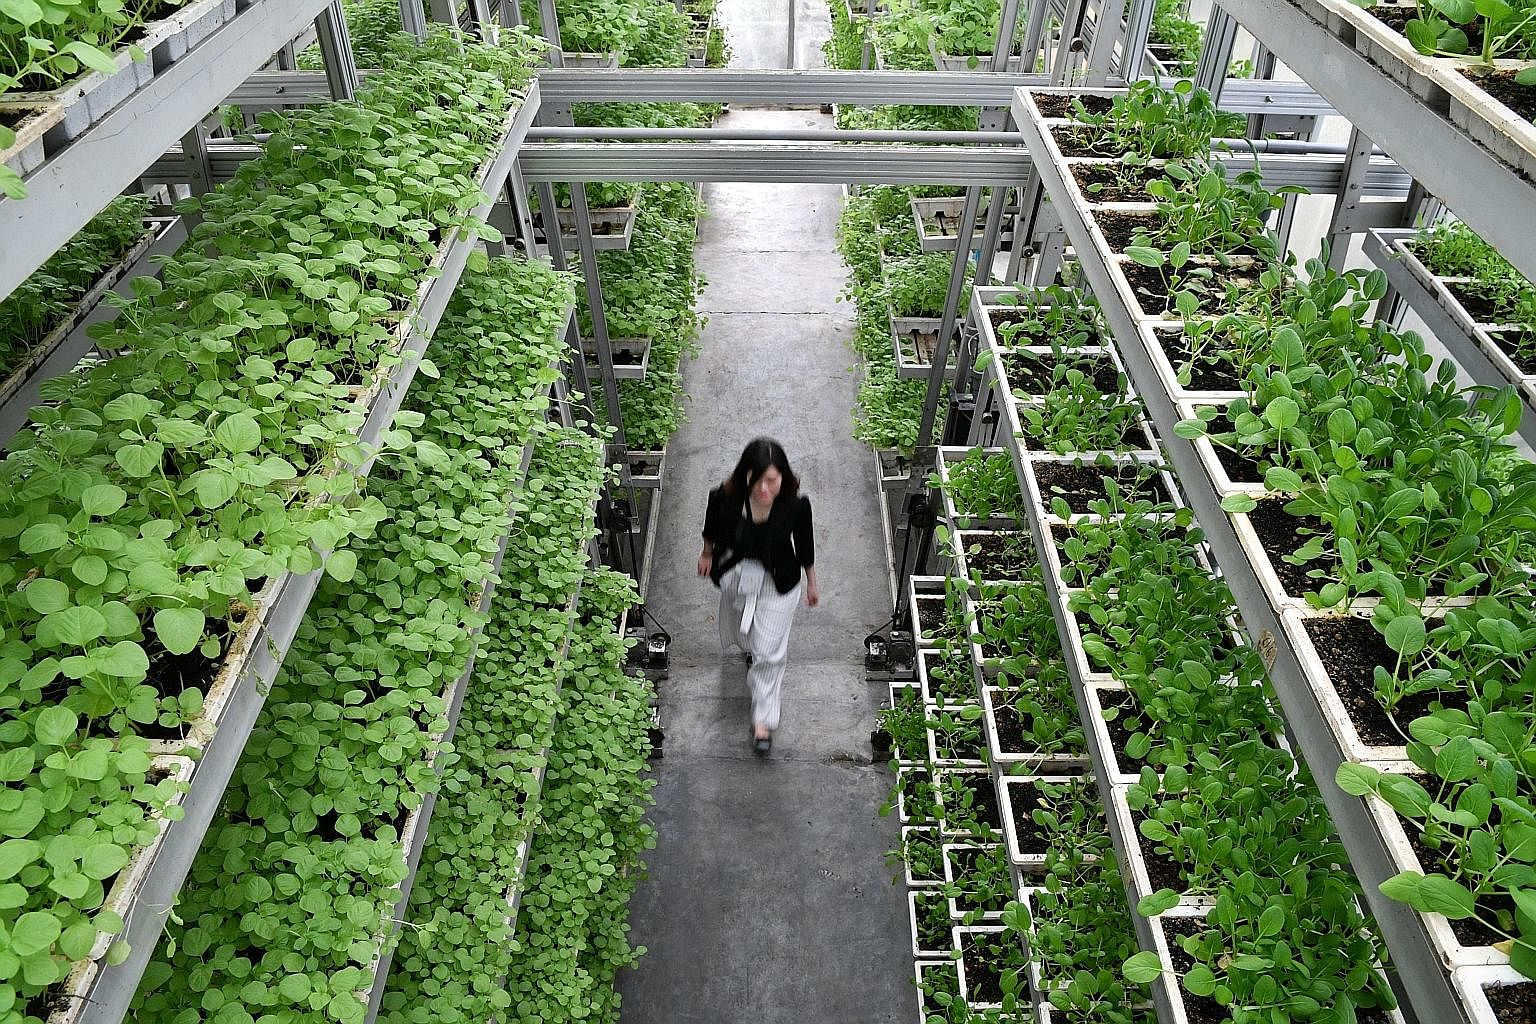 Singapore's agri-food industry received a boost when Sky Greens, an urban farm in Lim Chu Kang, received certification under the world's first national standard for organic vegetables grown in urban environments. The Singapore Standard 632 for organi